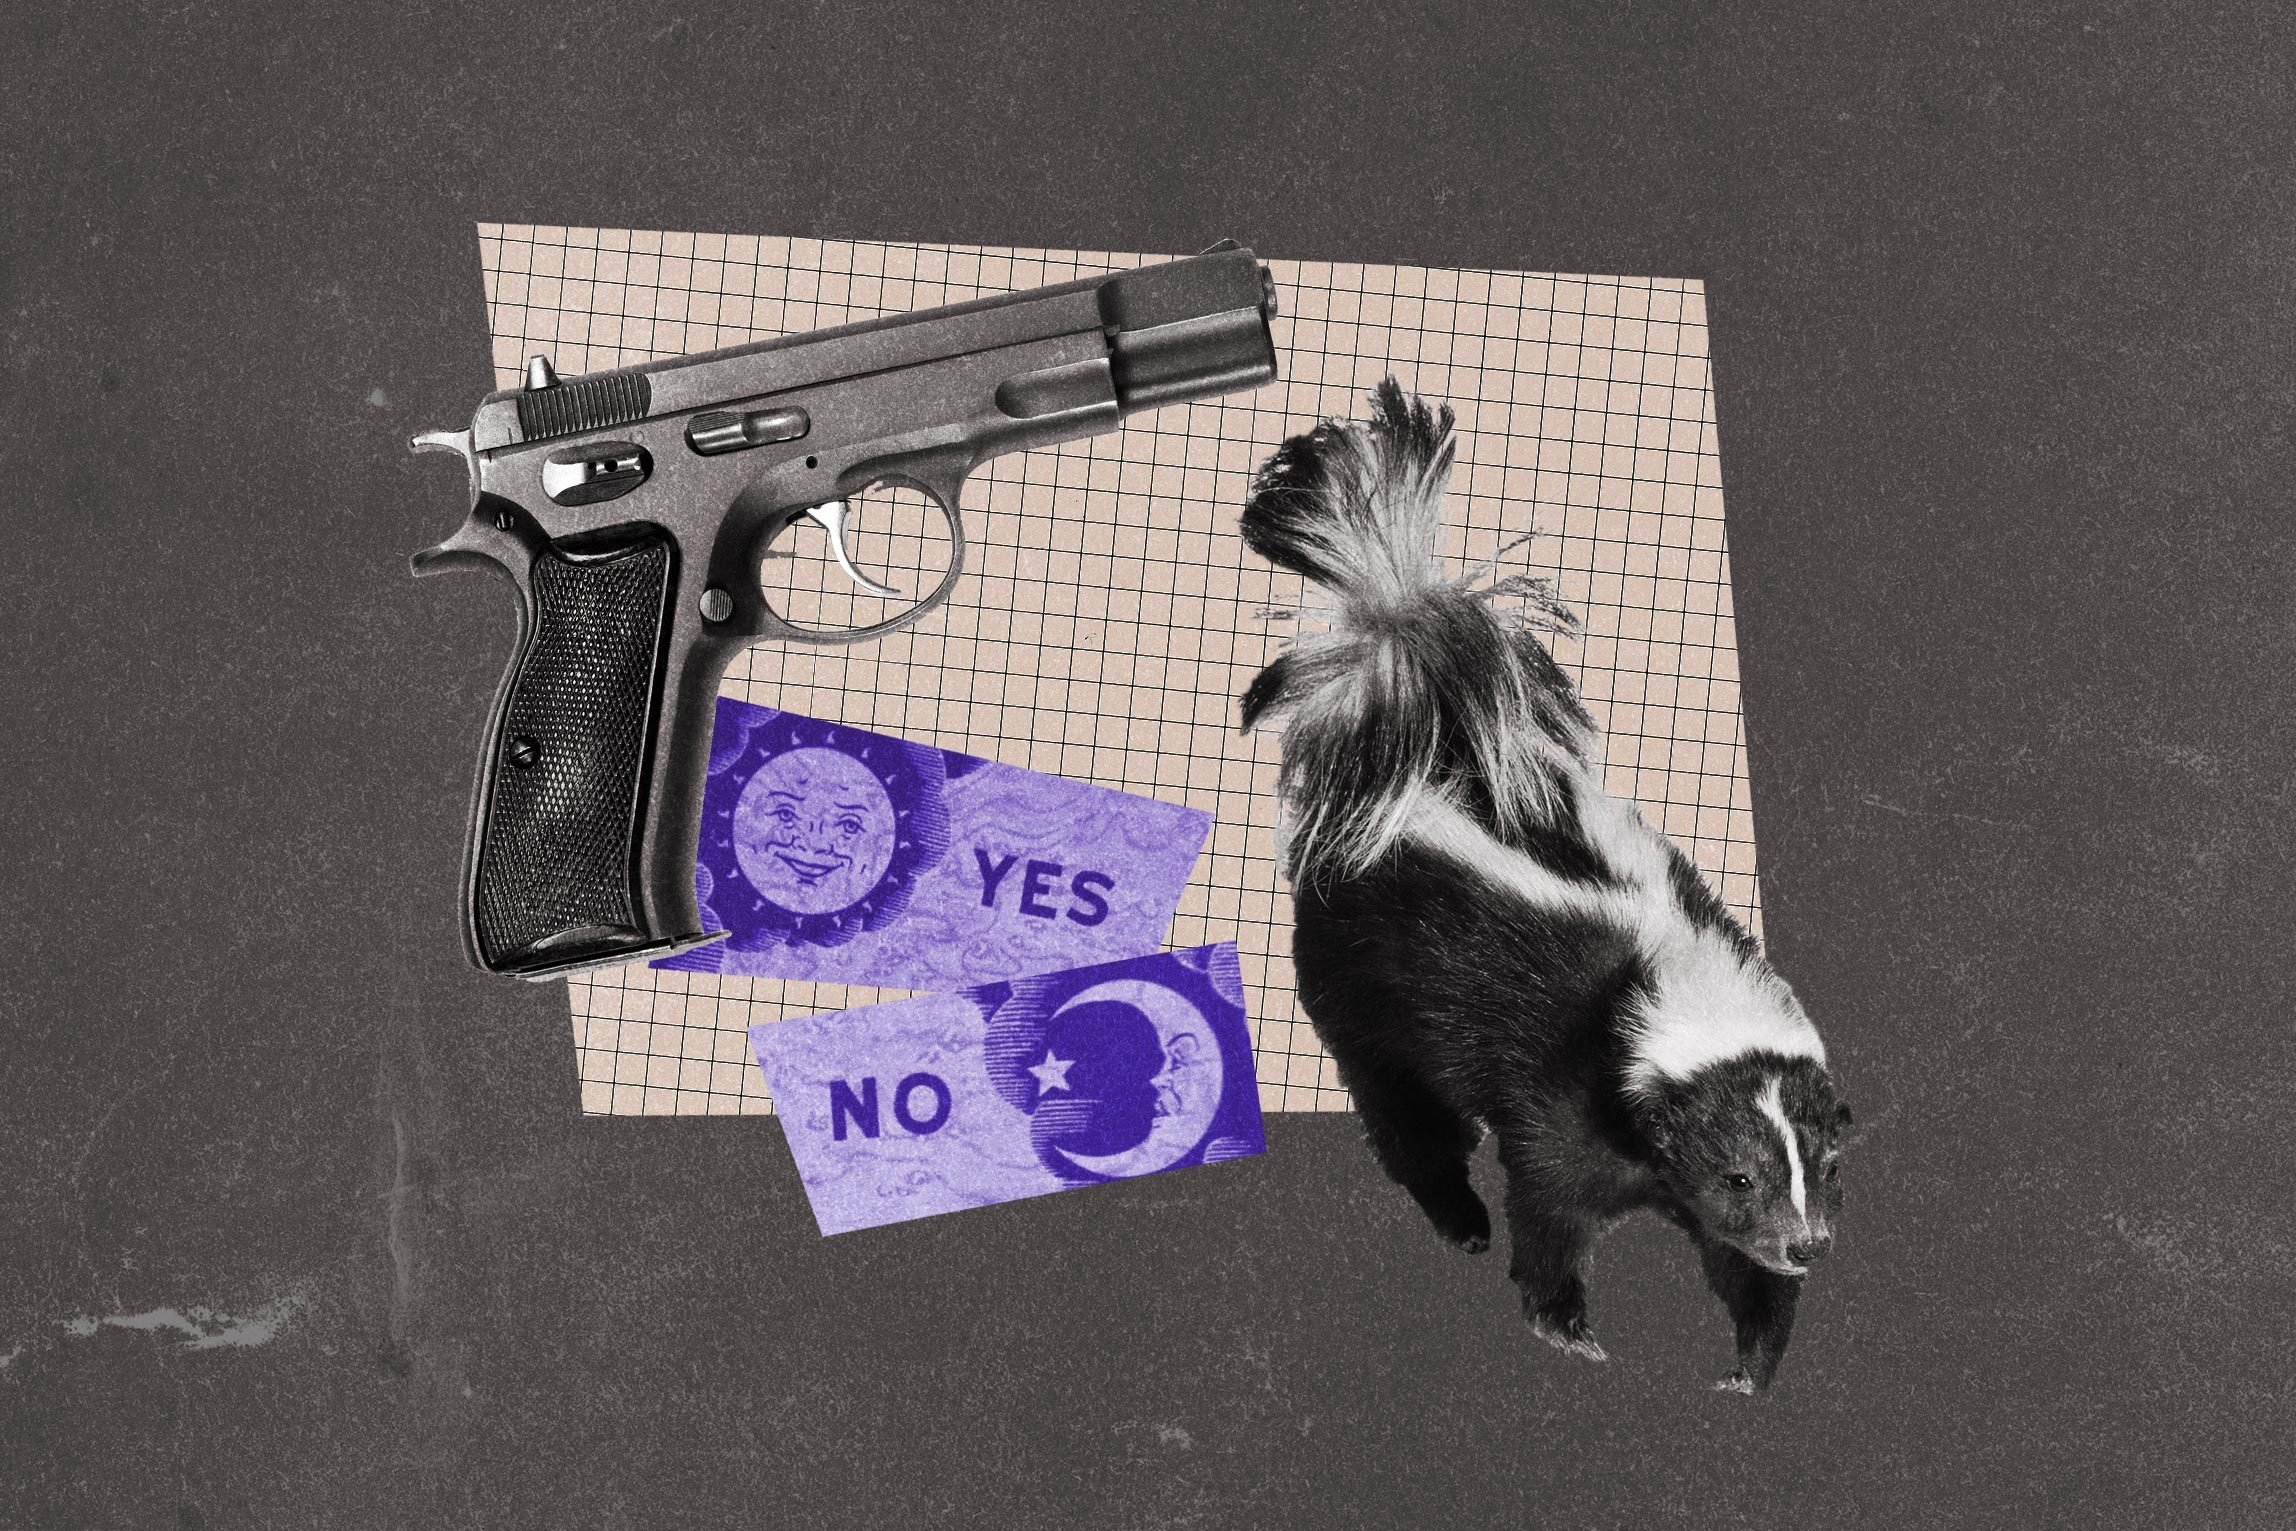 Collage of skunk, gun, and ouija board.